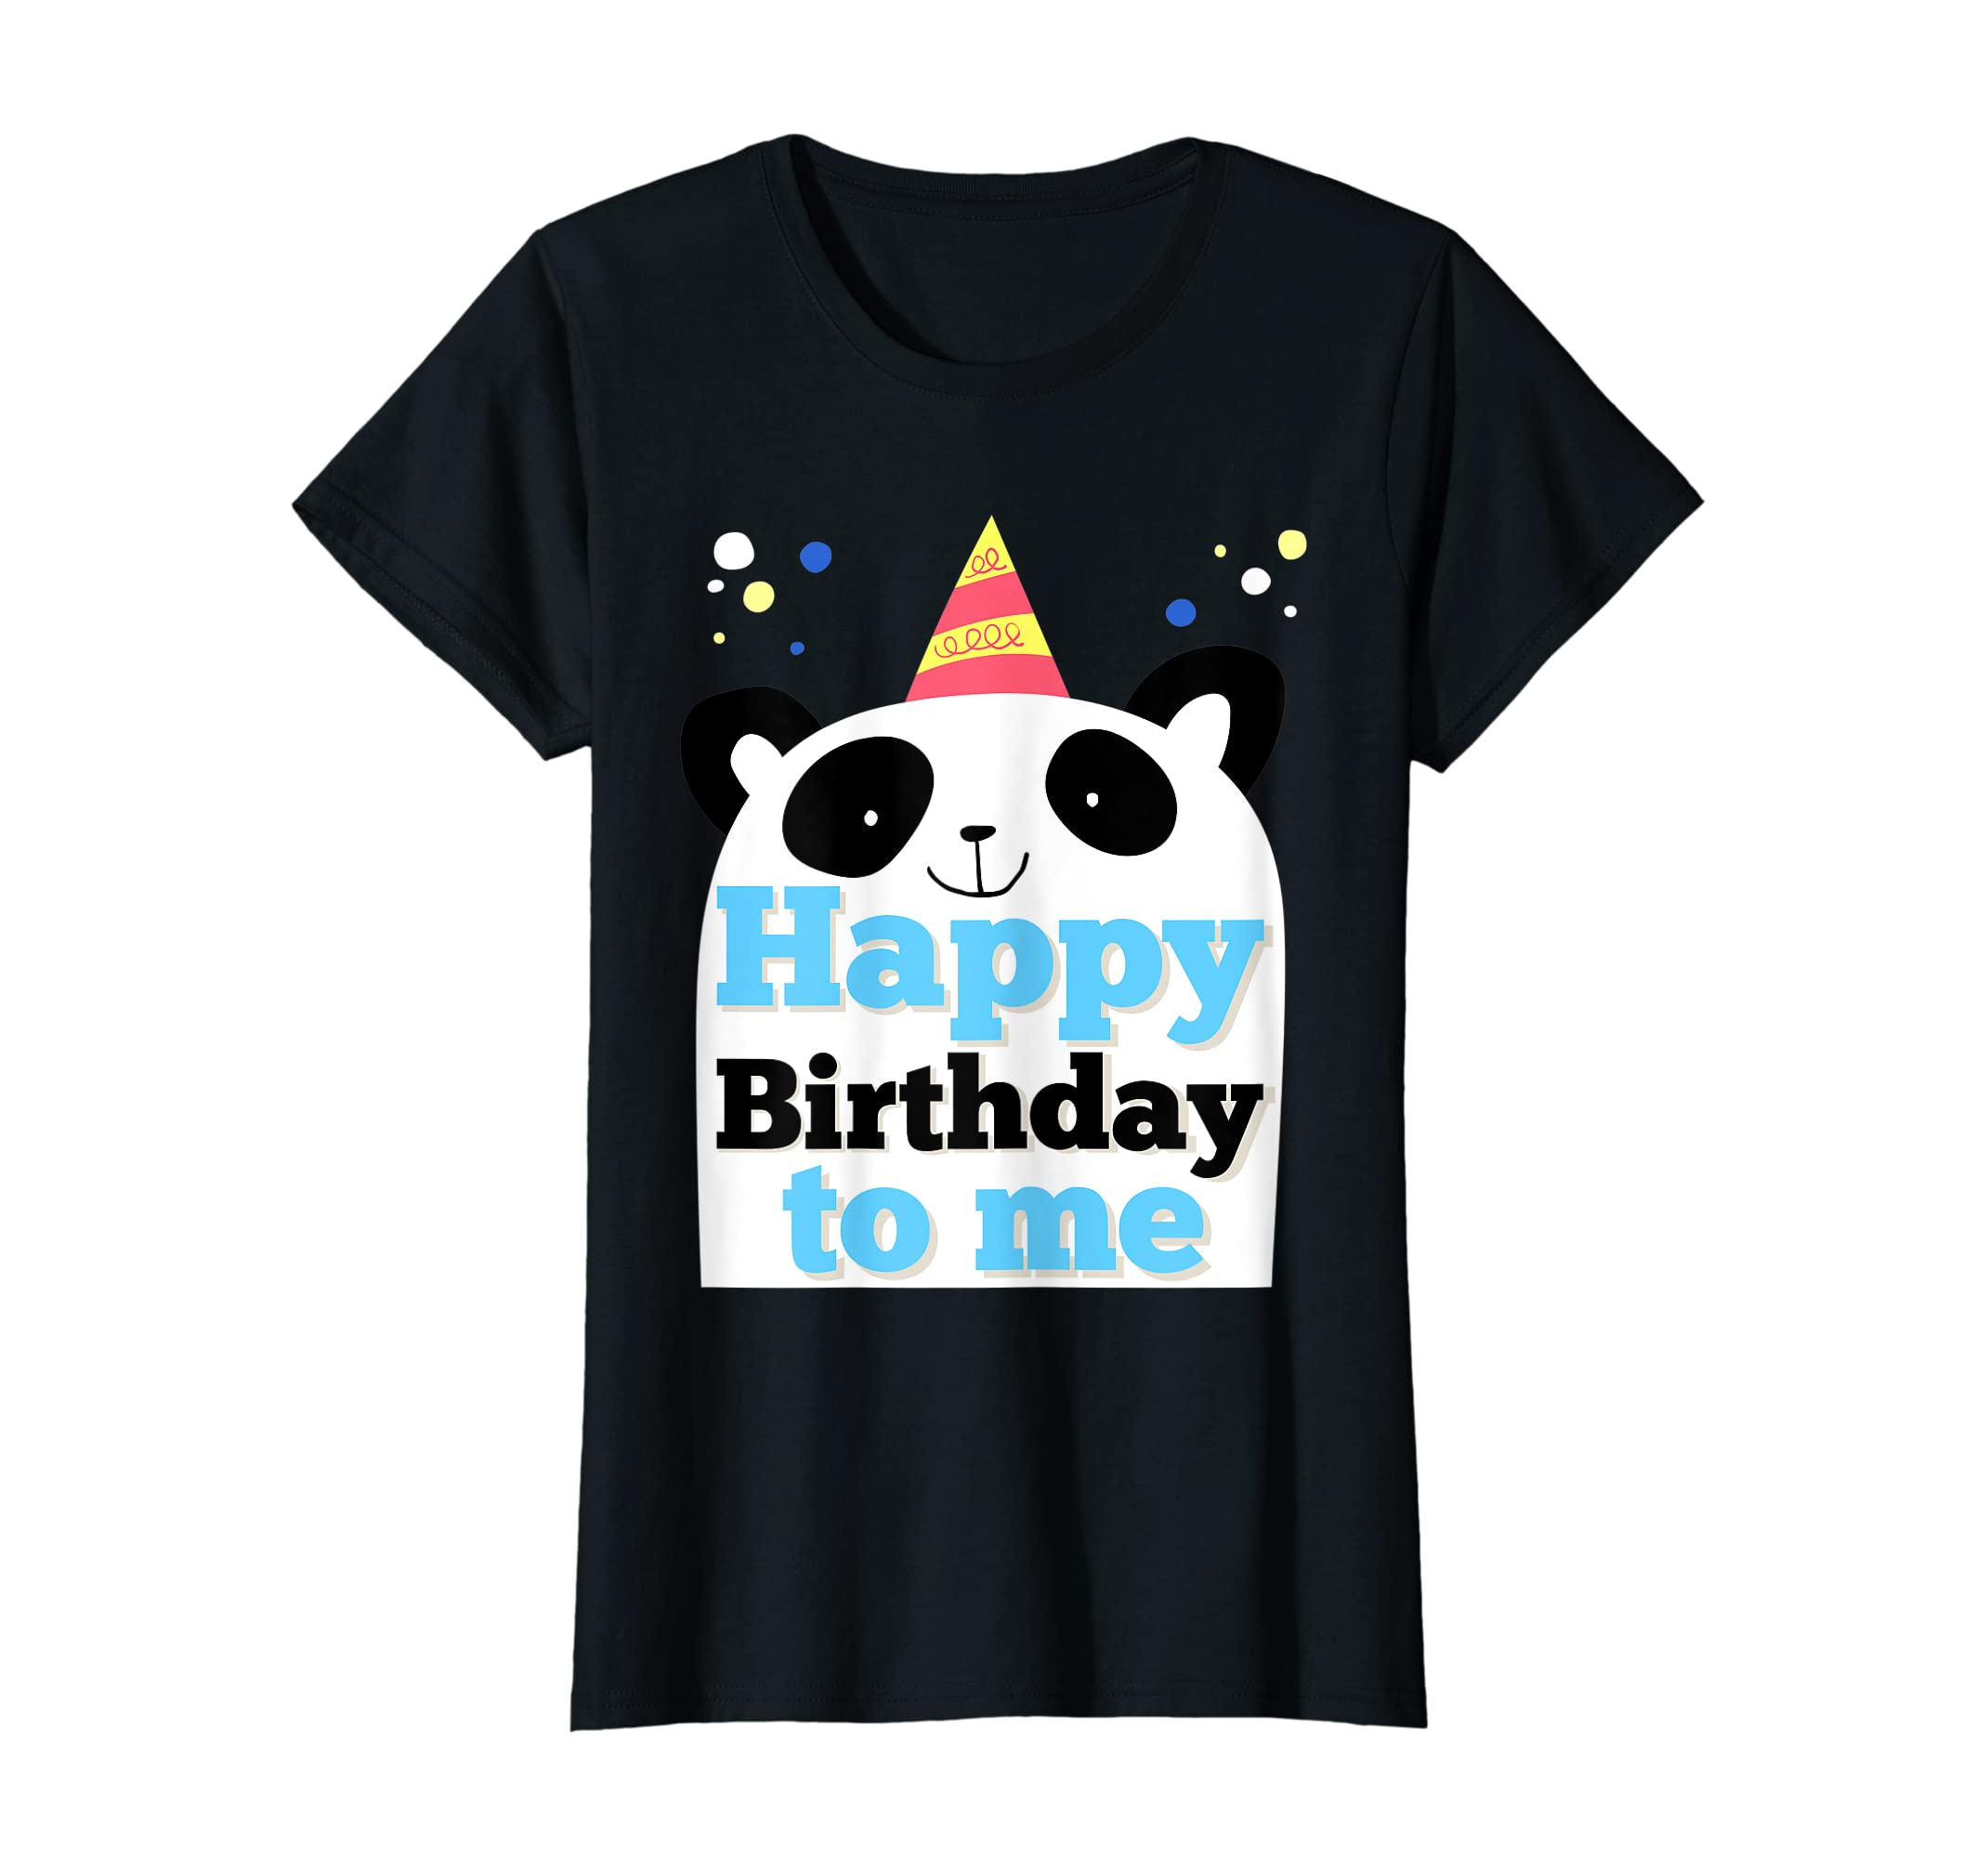 Amazon Cute Panda Birthday Gifts Happy To Me Cool Clothing